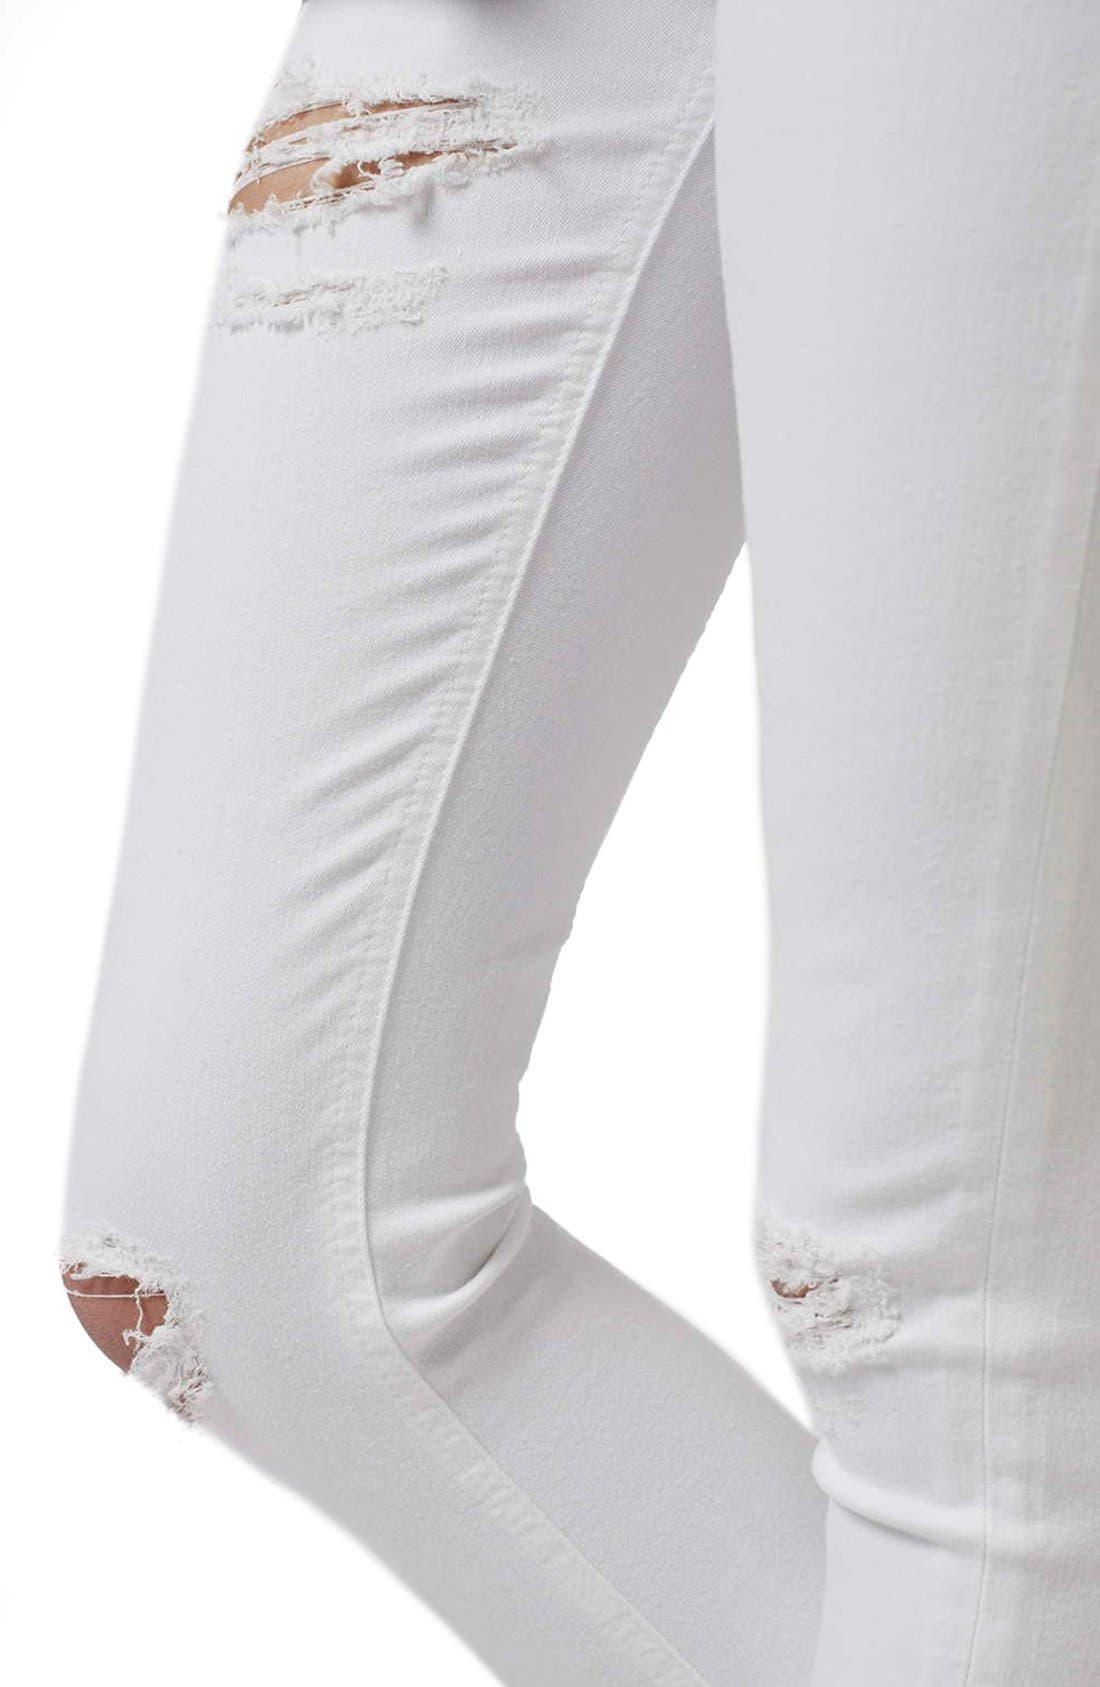 'Jamie - Super Ripped' High Waist Skinny Jeans,                             Alternate thumbnail 5, color,